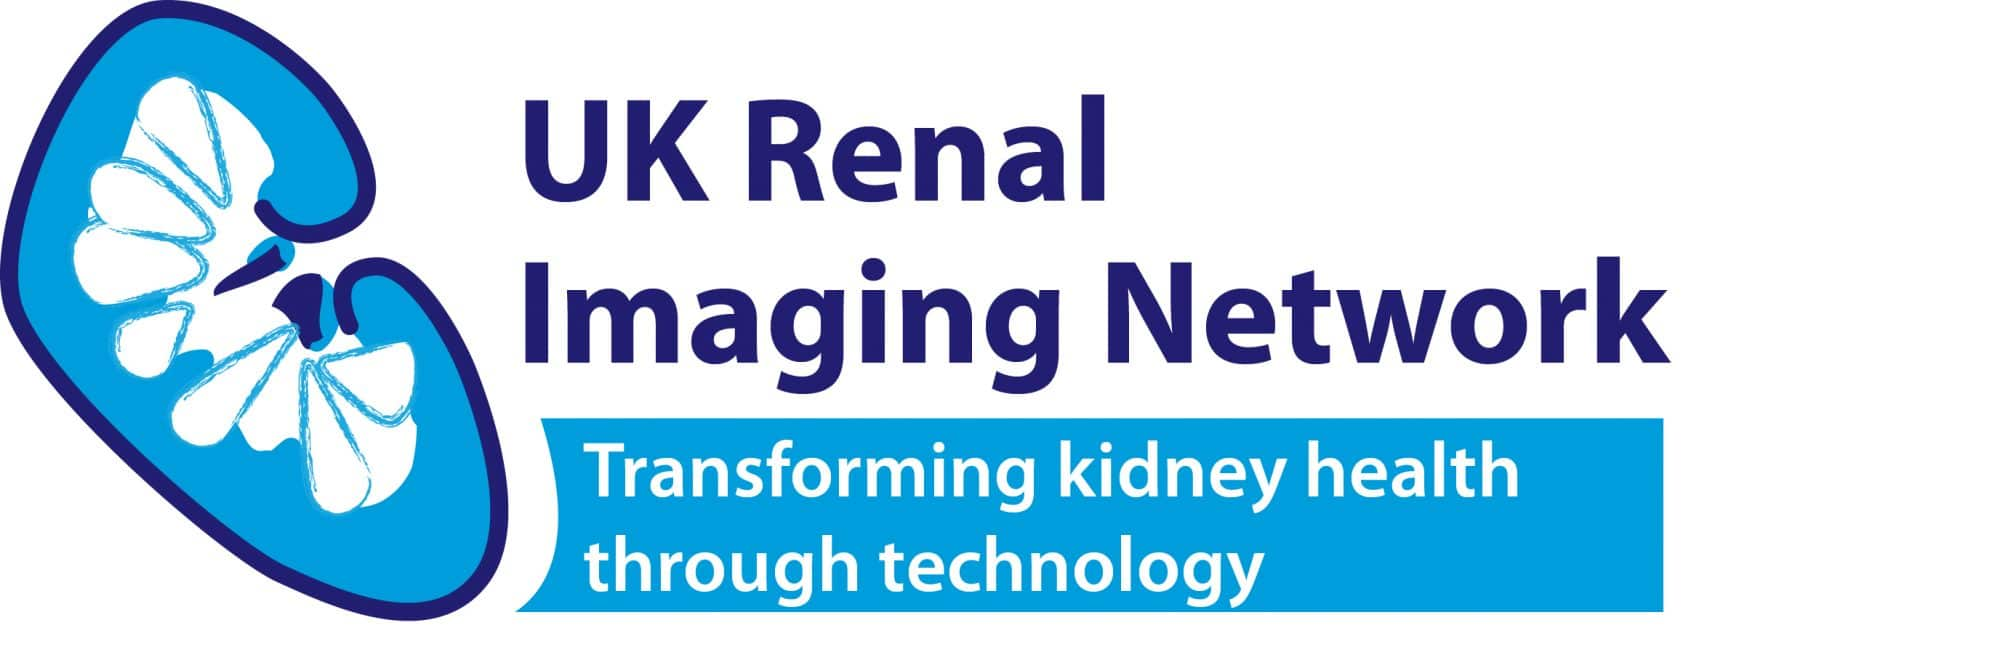 UK Renal Imaging Network logo